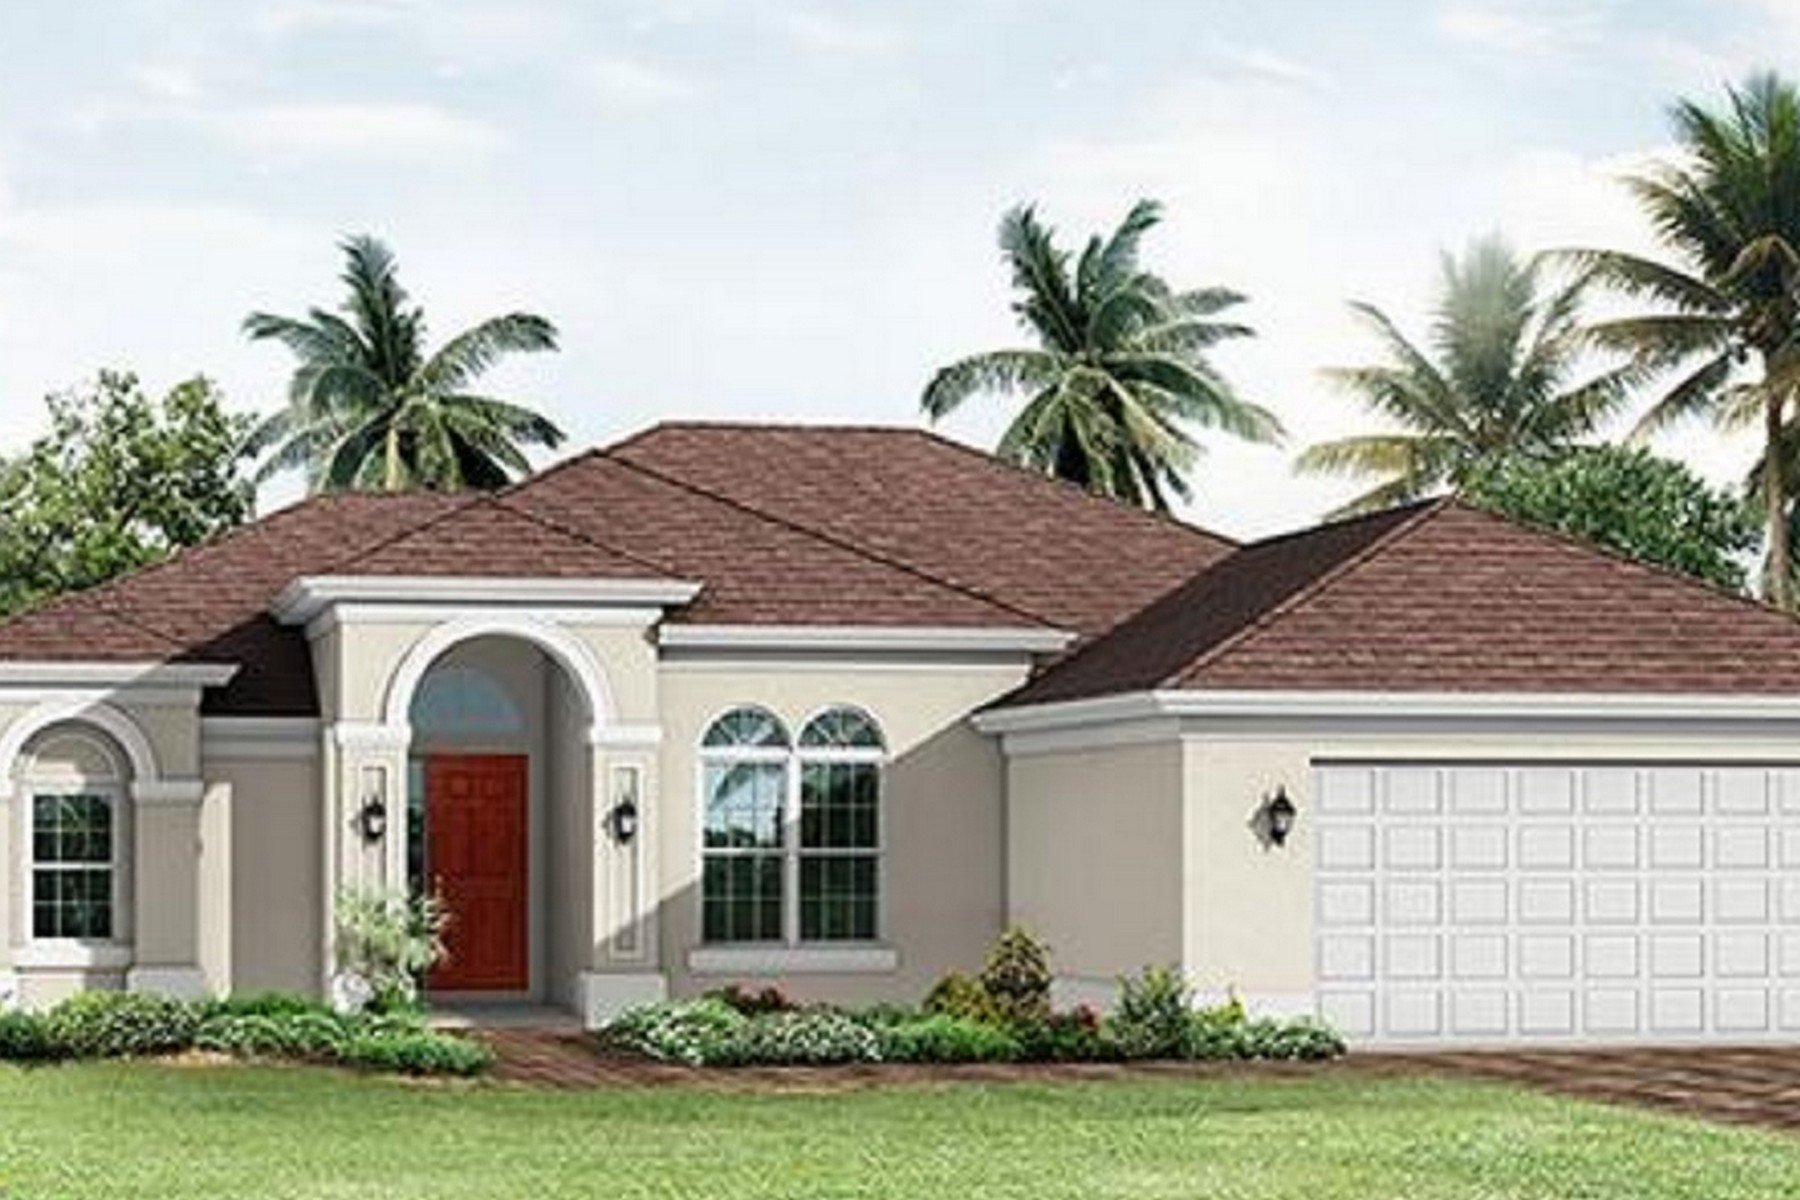 Maison unifamiliale pour l Vente à Lovely Home 5812 N Dooley Circle Port St. Lucie, Florida, 34953 États-Unis